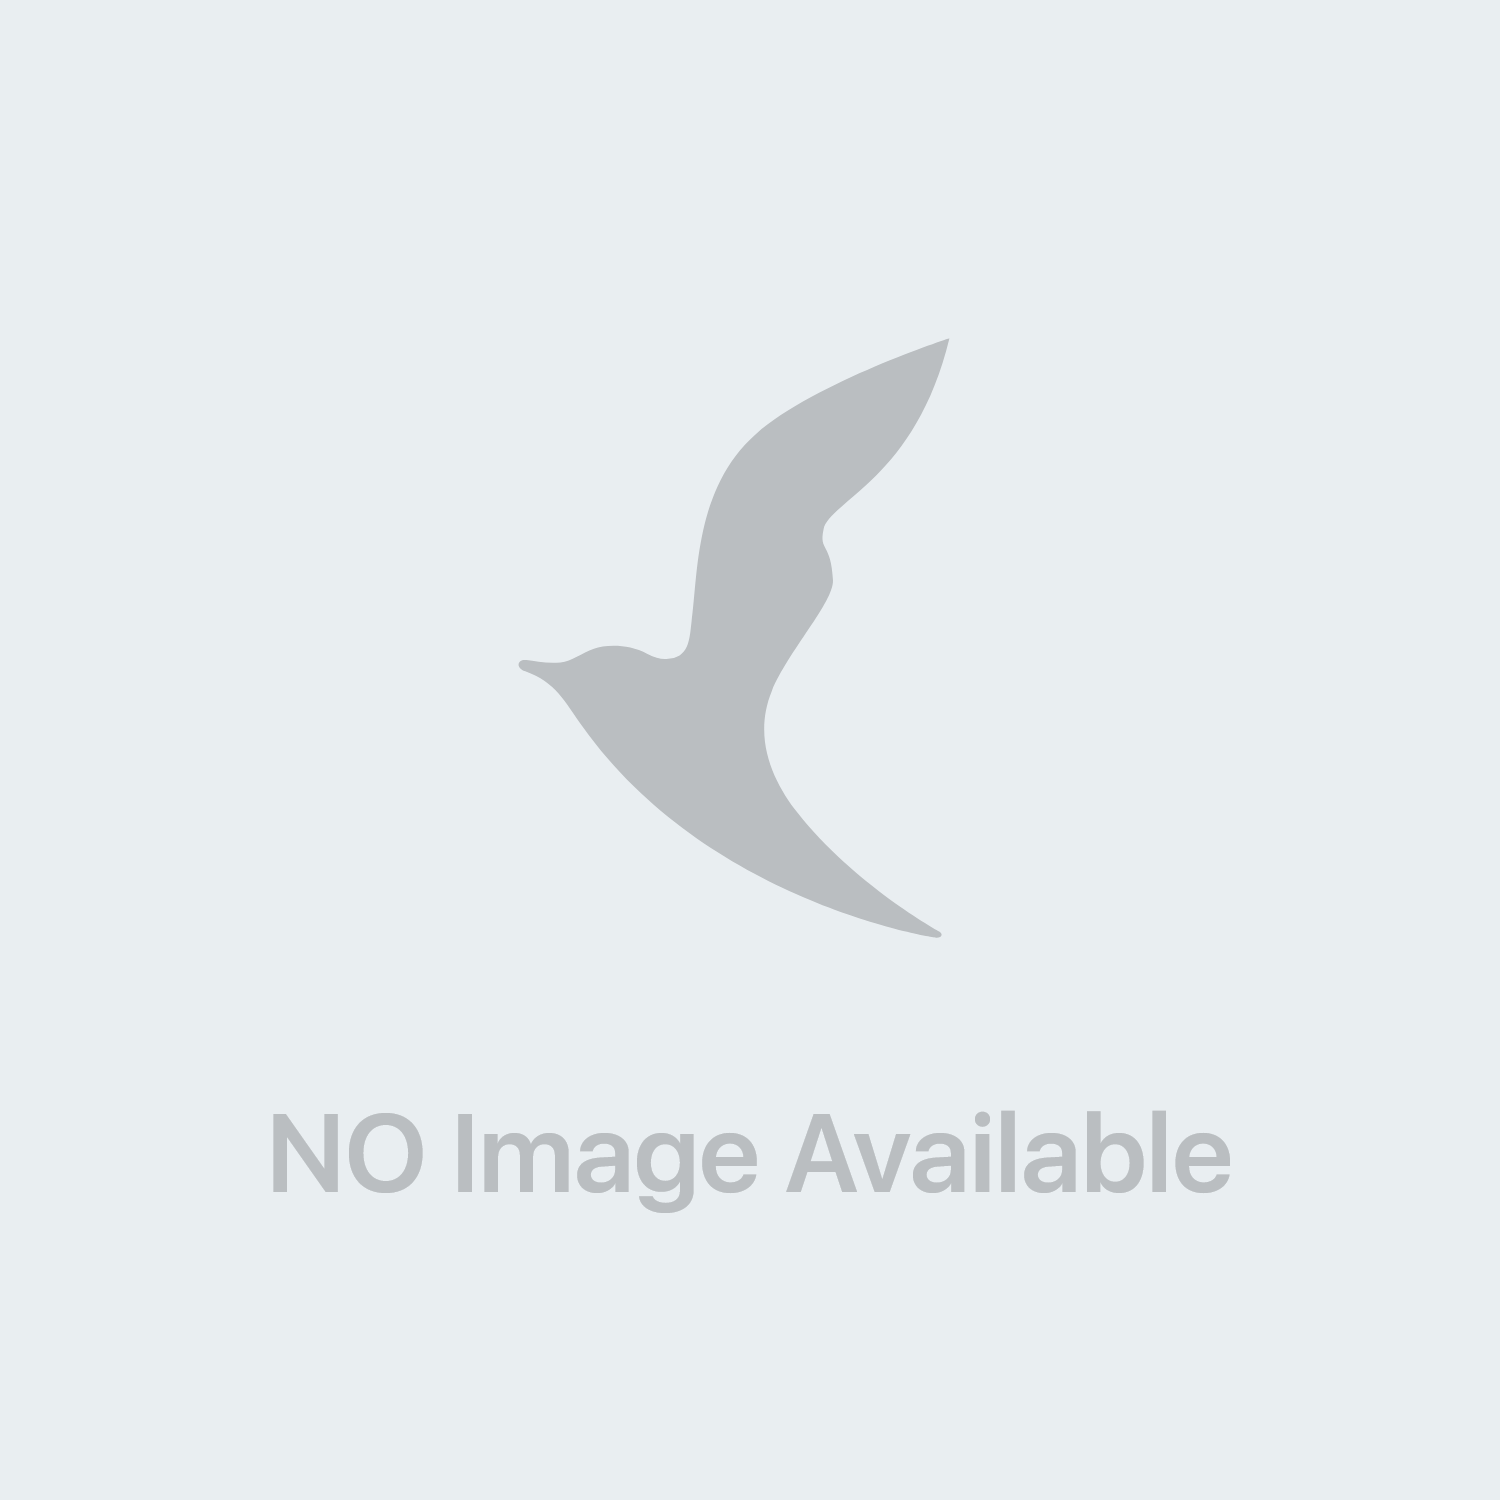 Kute Fluid Repair Crema Corpo 200 Ml